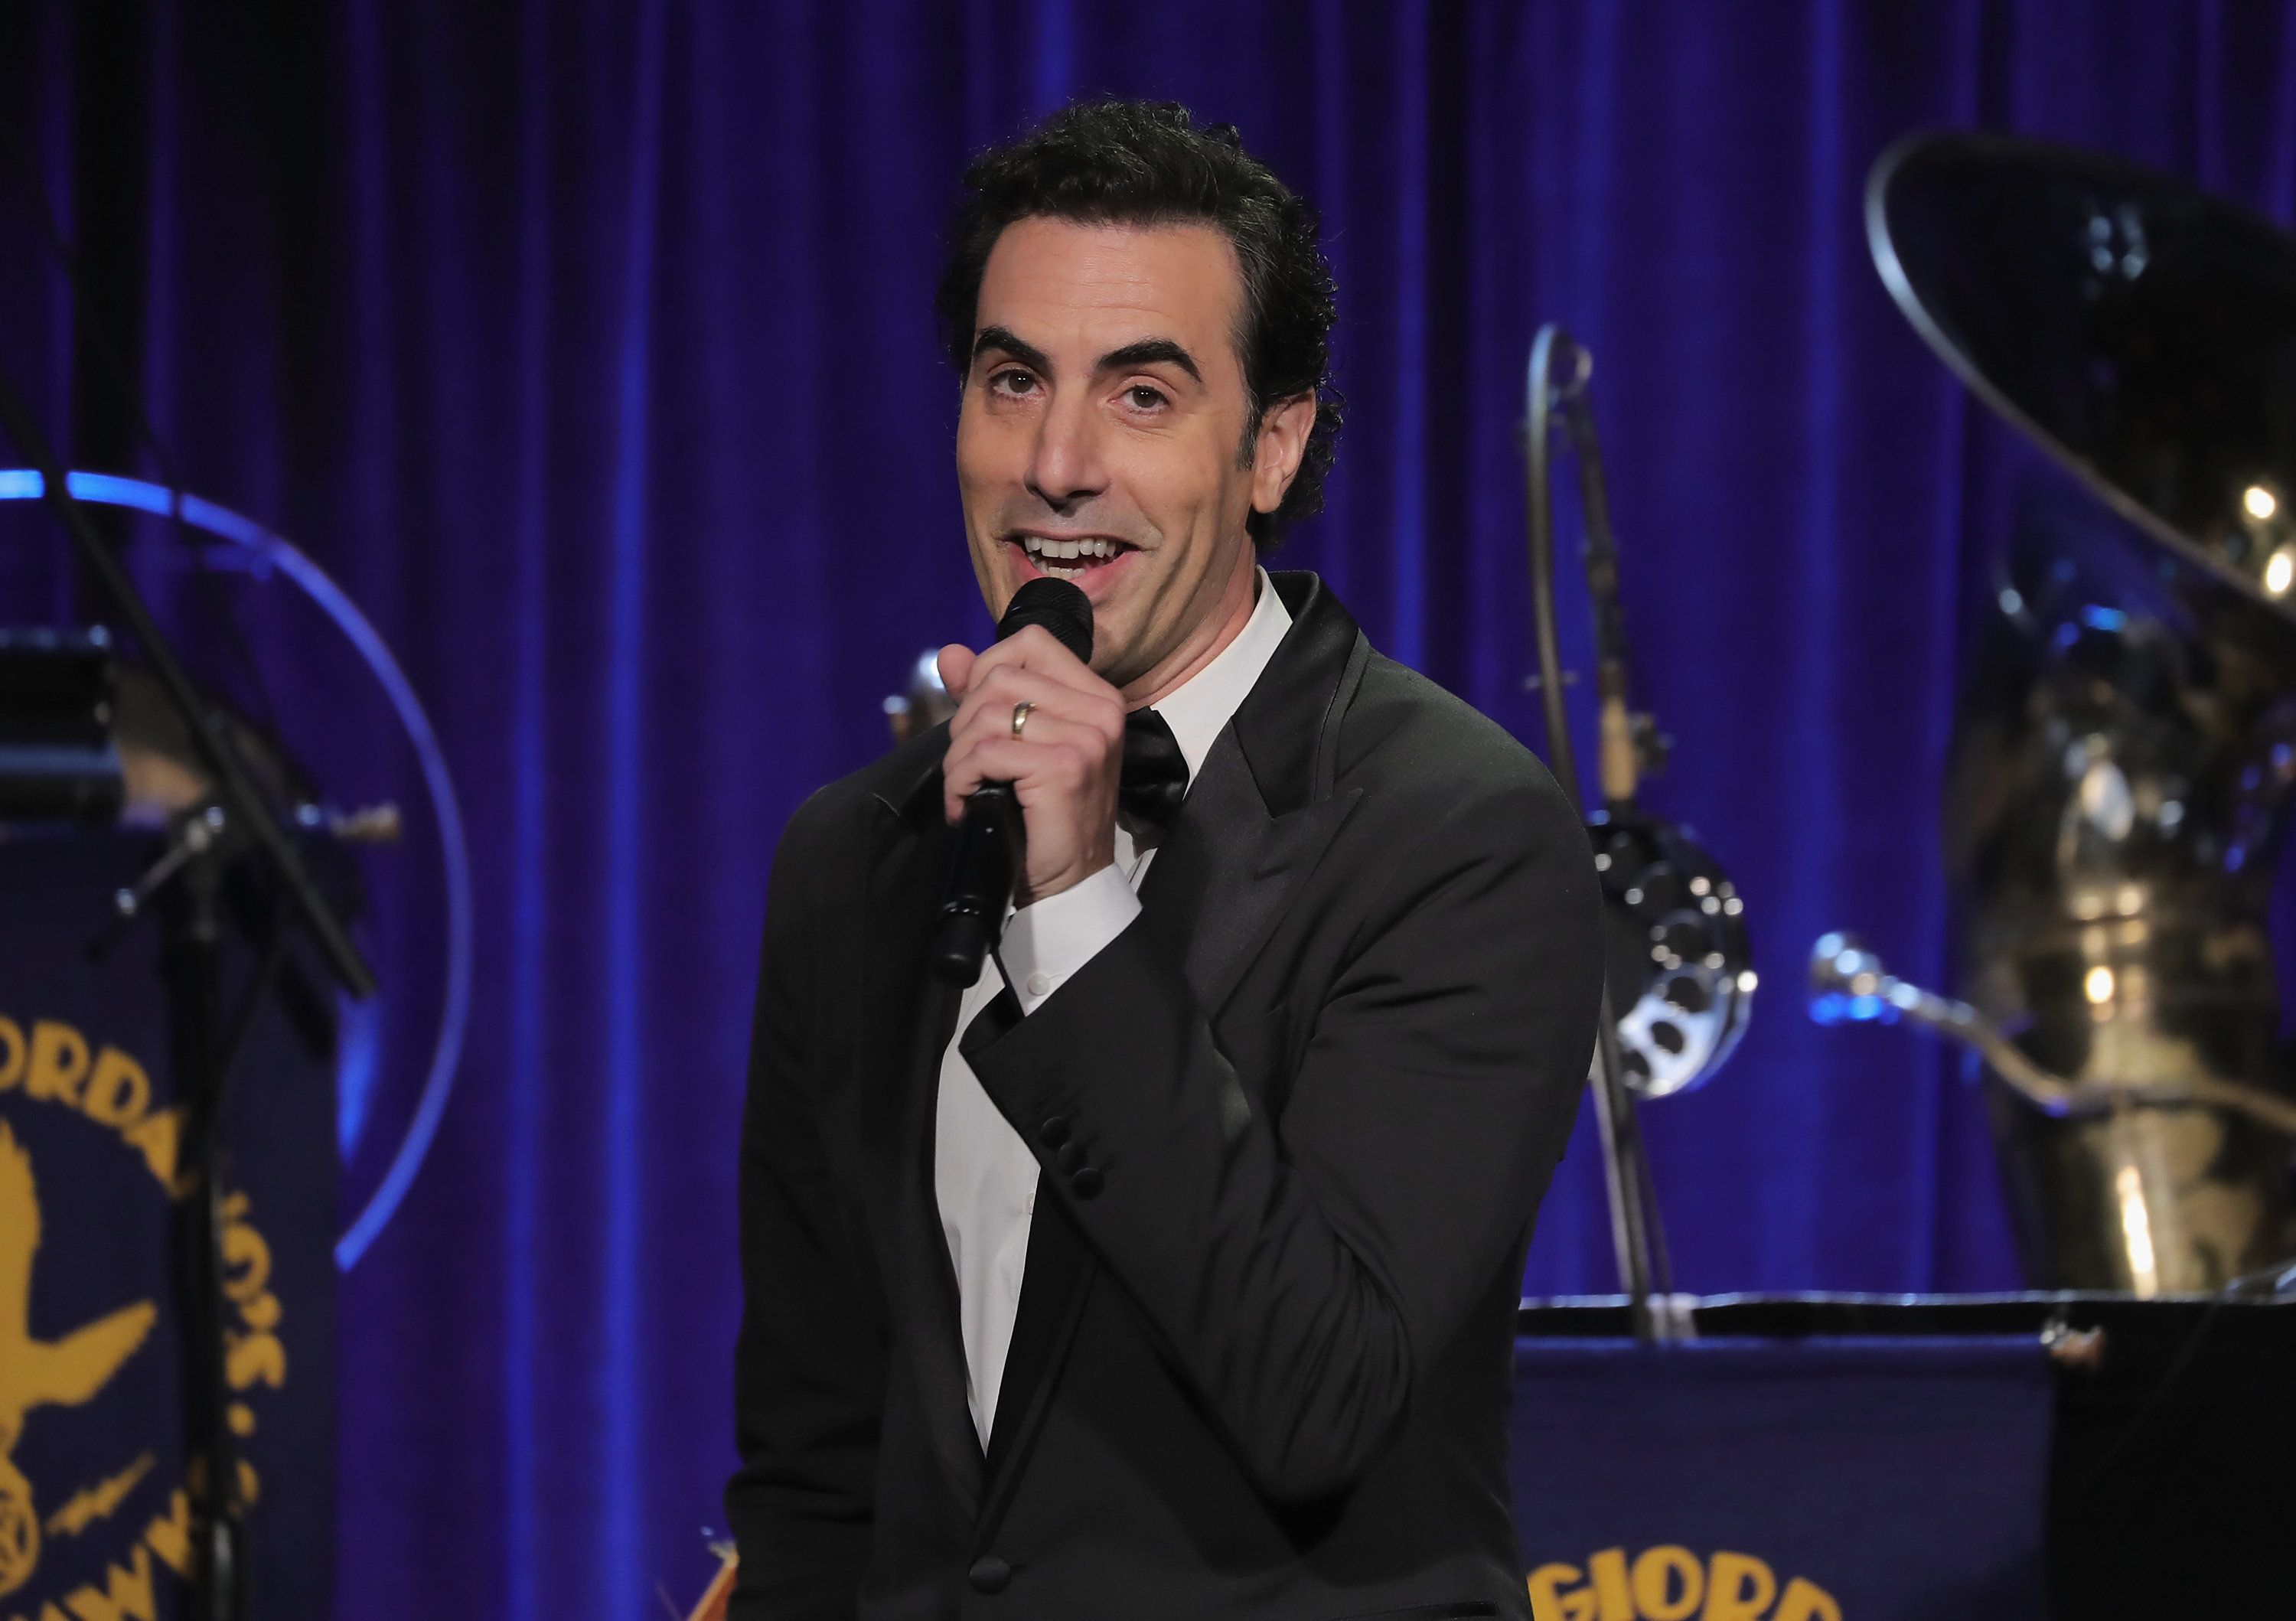 NEW YORK, NY - SEPTEMBER 21:  Sacha Baron Cohen onstage at the Friars Club Honoring Martin Scorsese With the Entertainment Icon Award at Cipriani Wall Street on September 21, 2016 in New York City.  (Photo by Neilson Barnard/Getty Images)